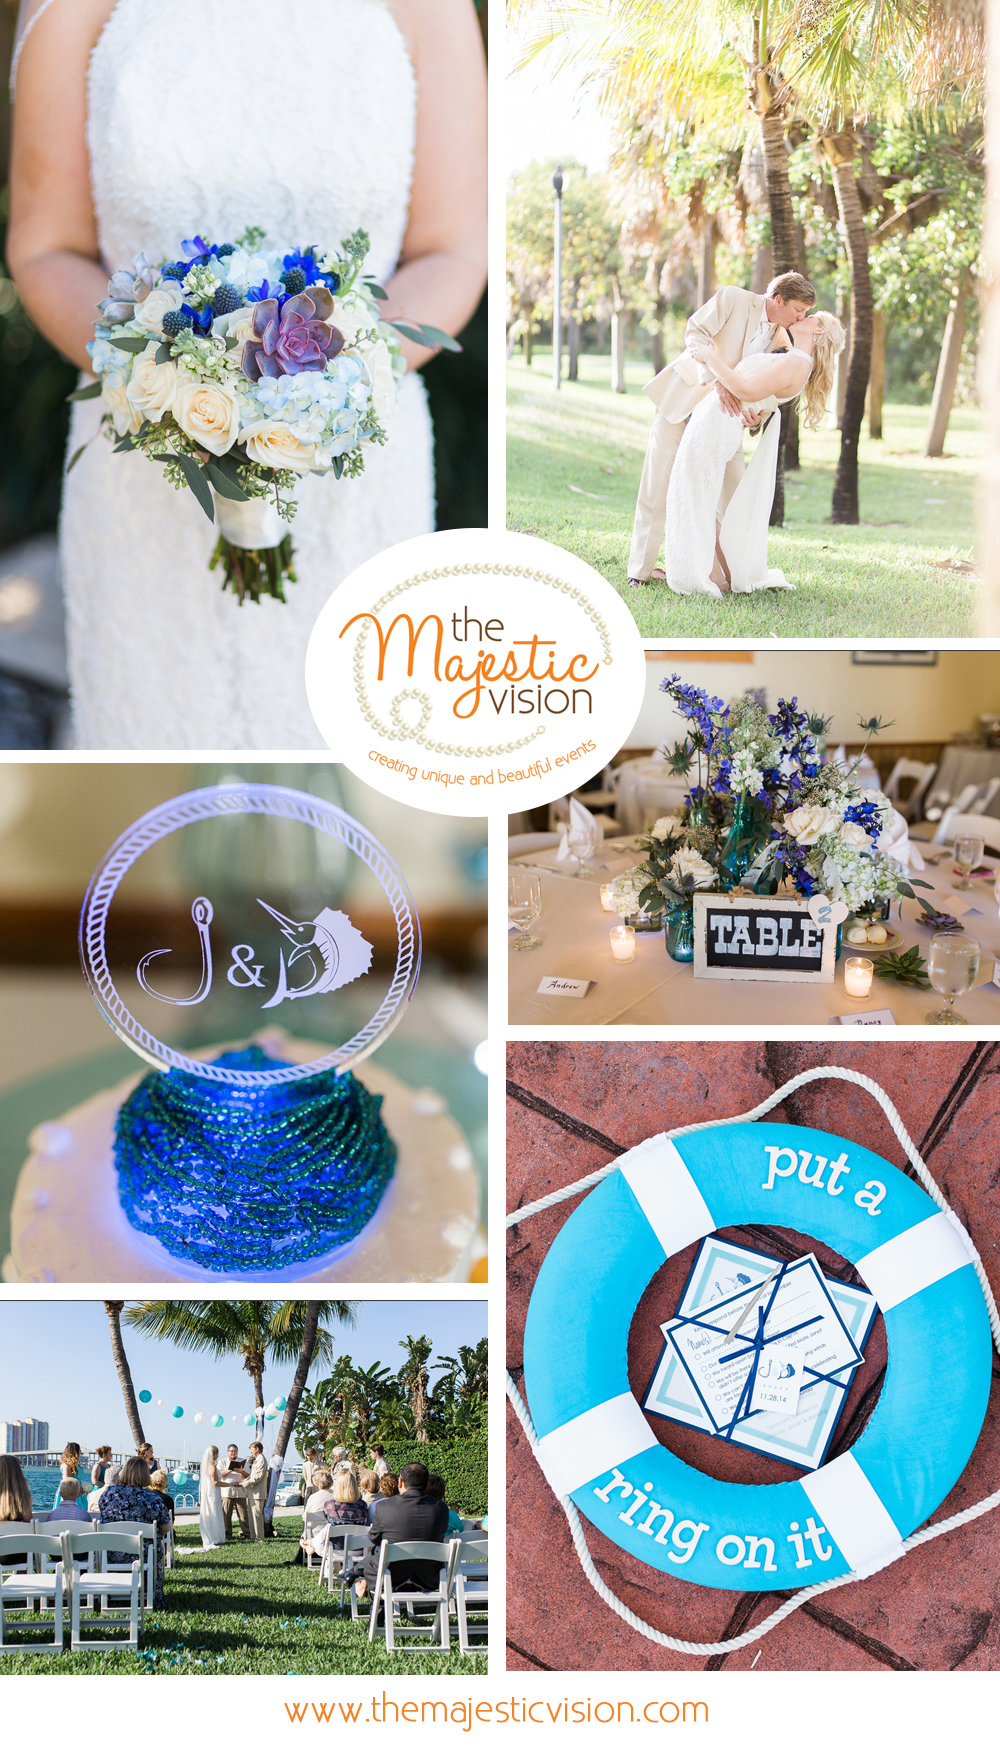 Sailfish Marina Wedding - The Majestic Vision